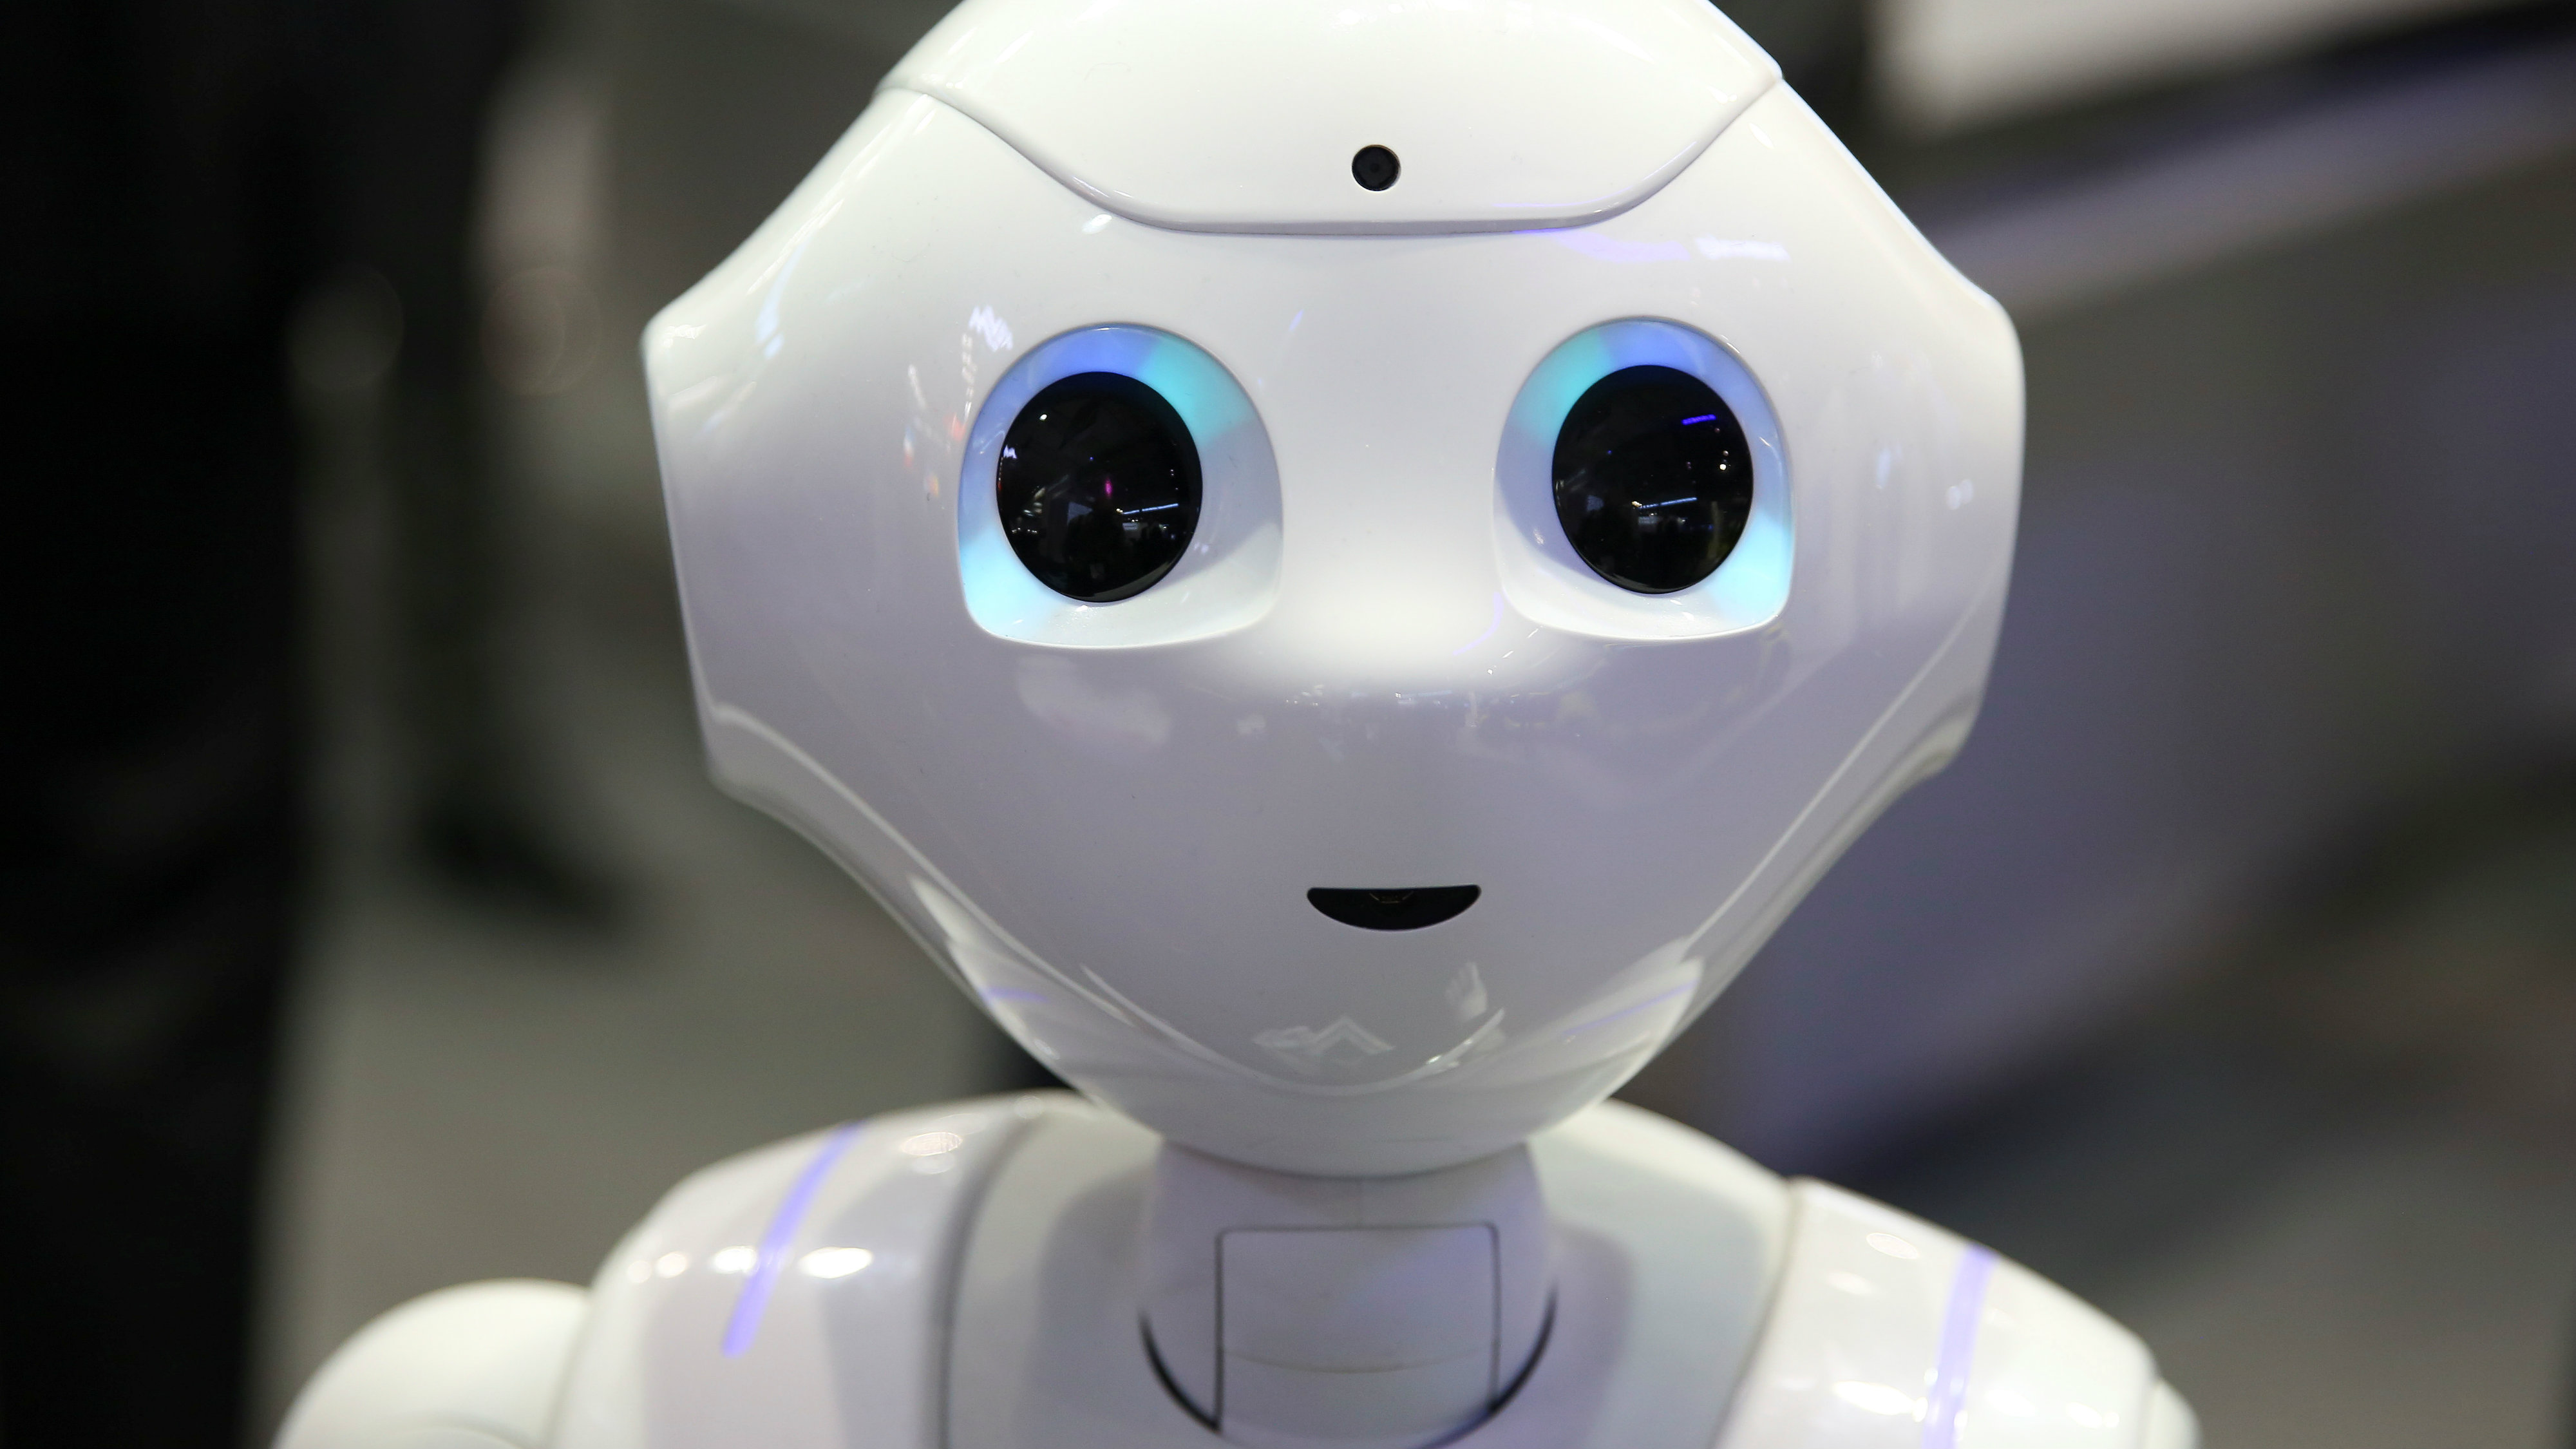 A robot speaks to attendees at the Oberthur Technologies stand at the Mobile World Congress in Barcelona, Spain March 1, 2017. REUTERS/Paul Hanna